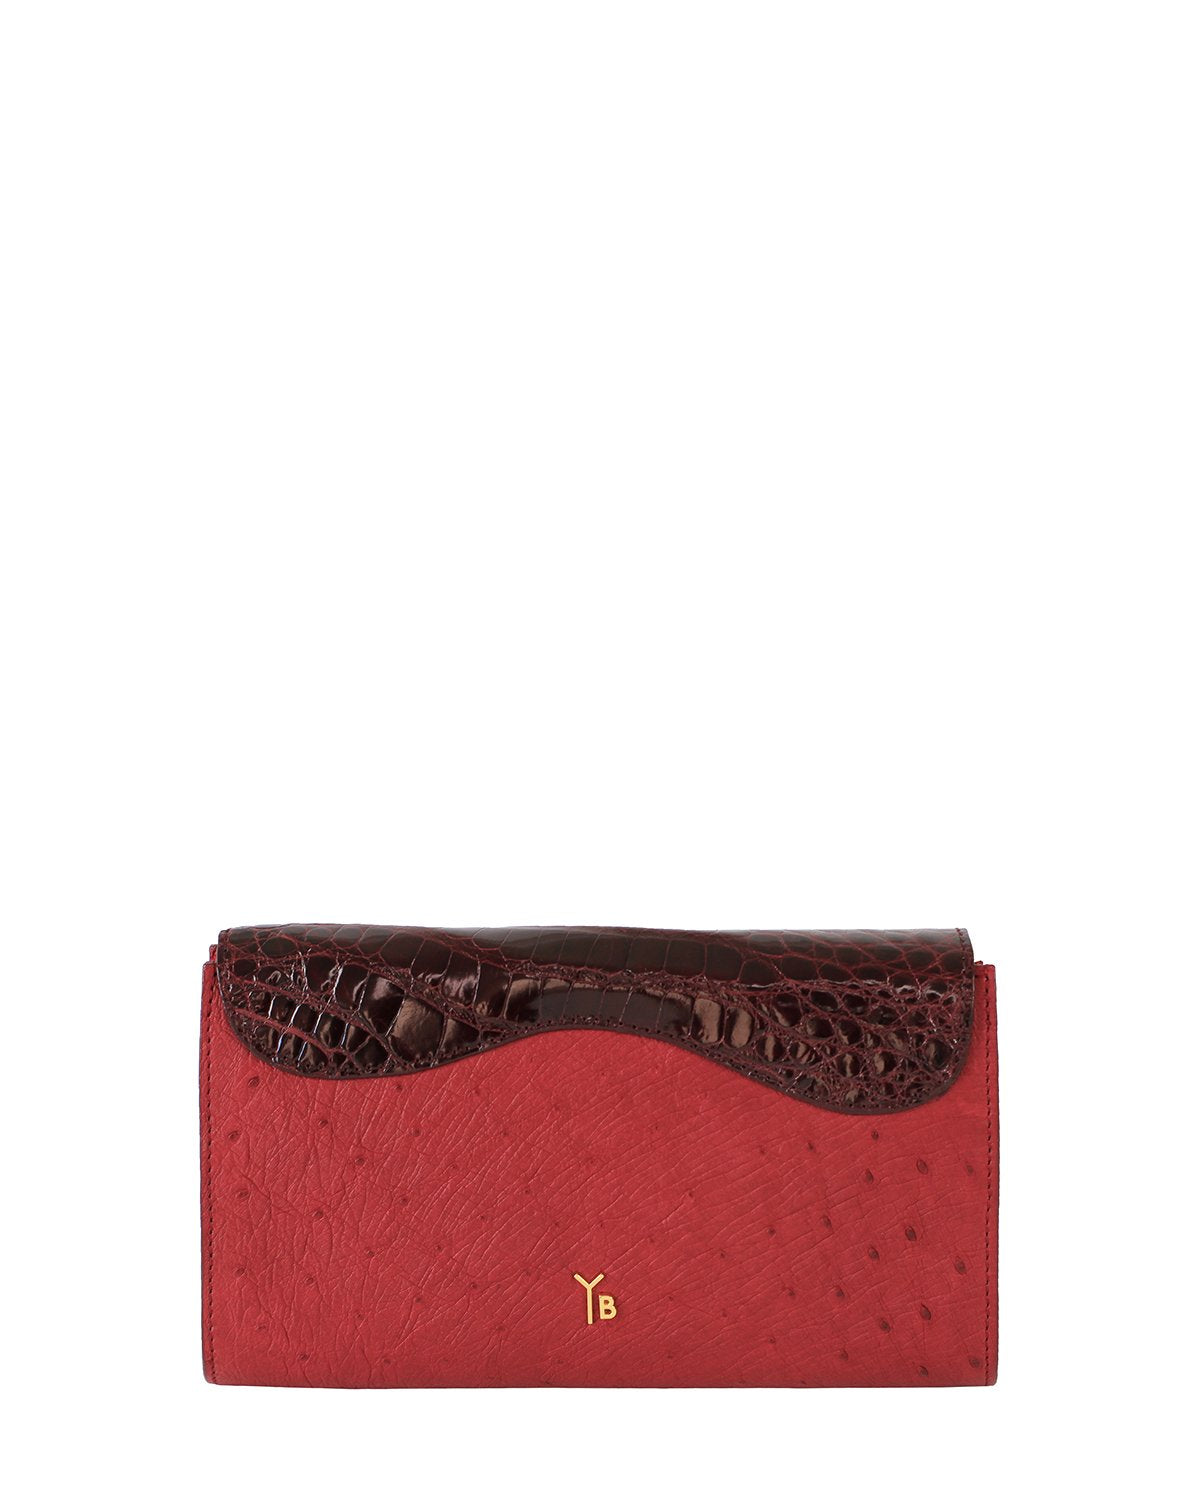 DARK RED ALLIGATOR OSTRICH OSCAR CLUTCH YELLOW GOLD YARA BASHOOR BACK VIEW